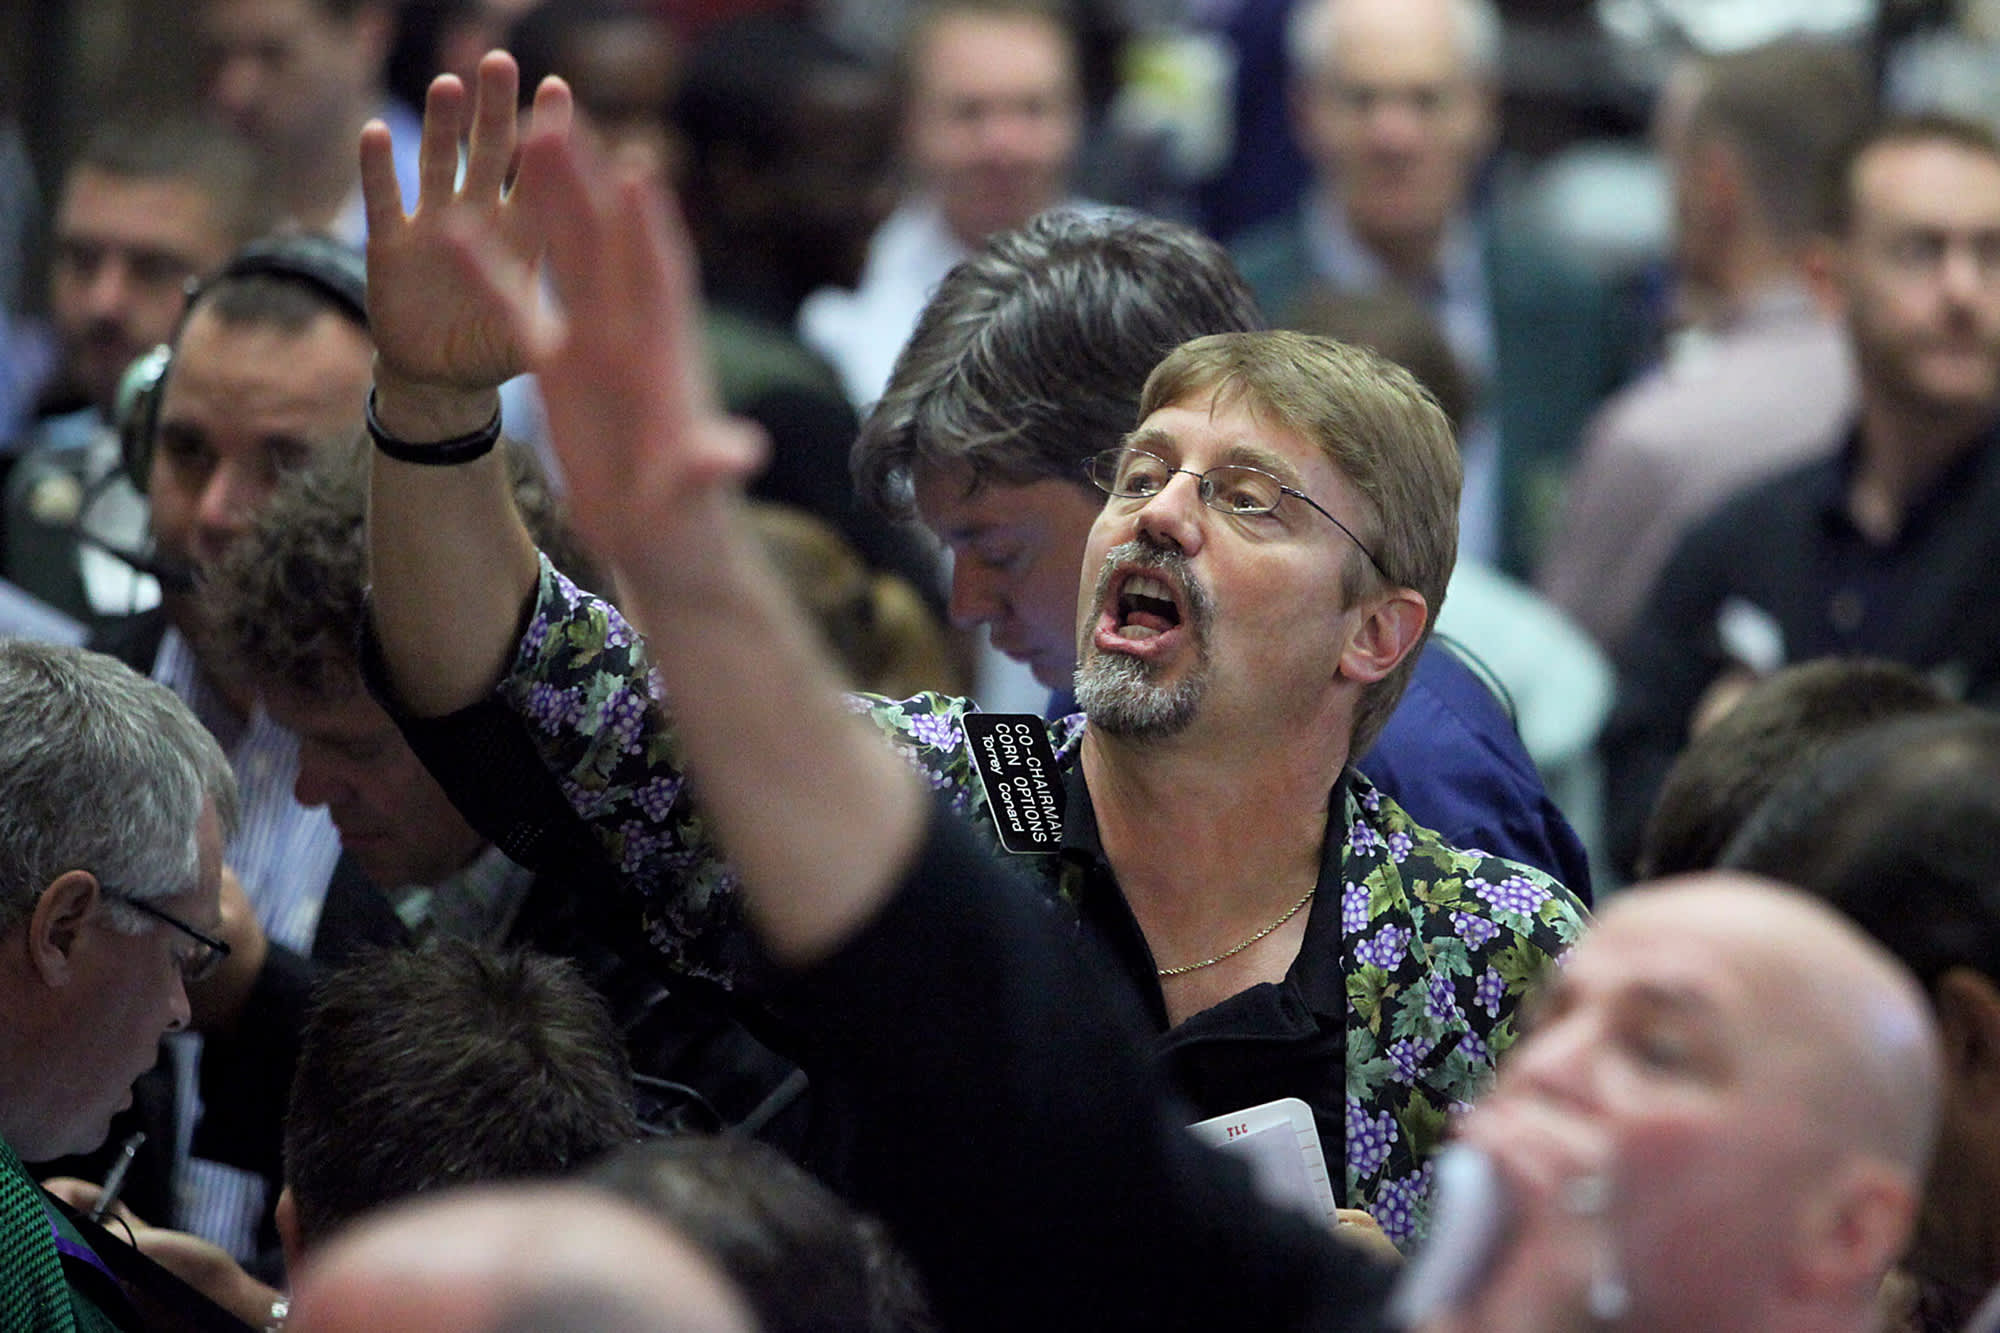 Why The Cme Shutting Down Floor Trading Matters